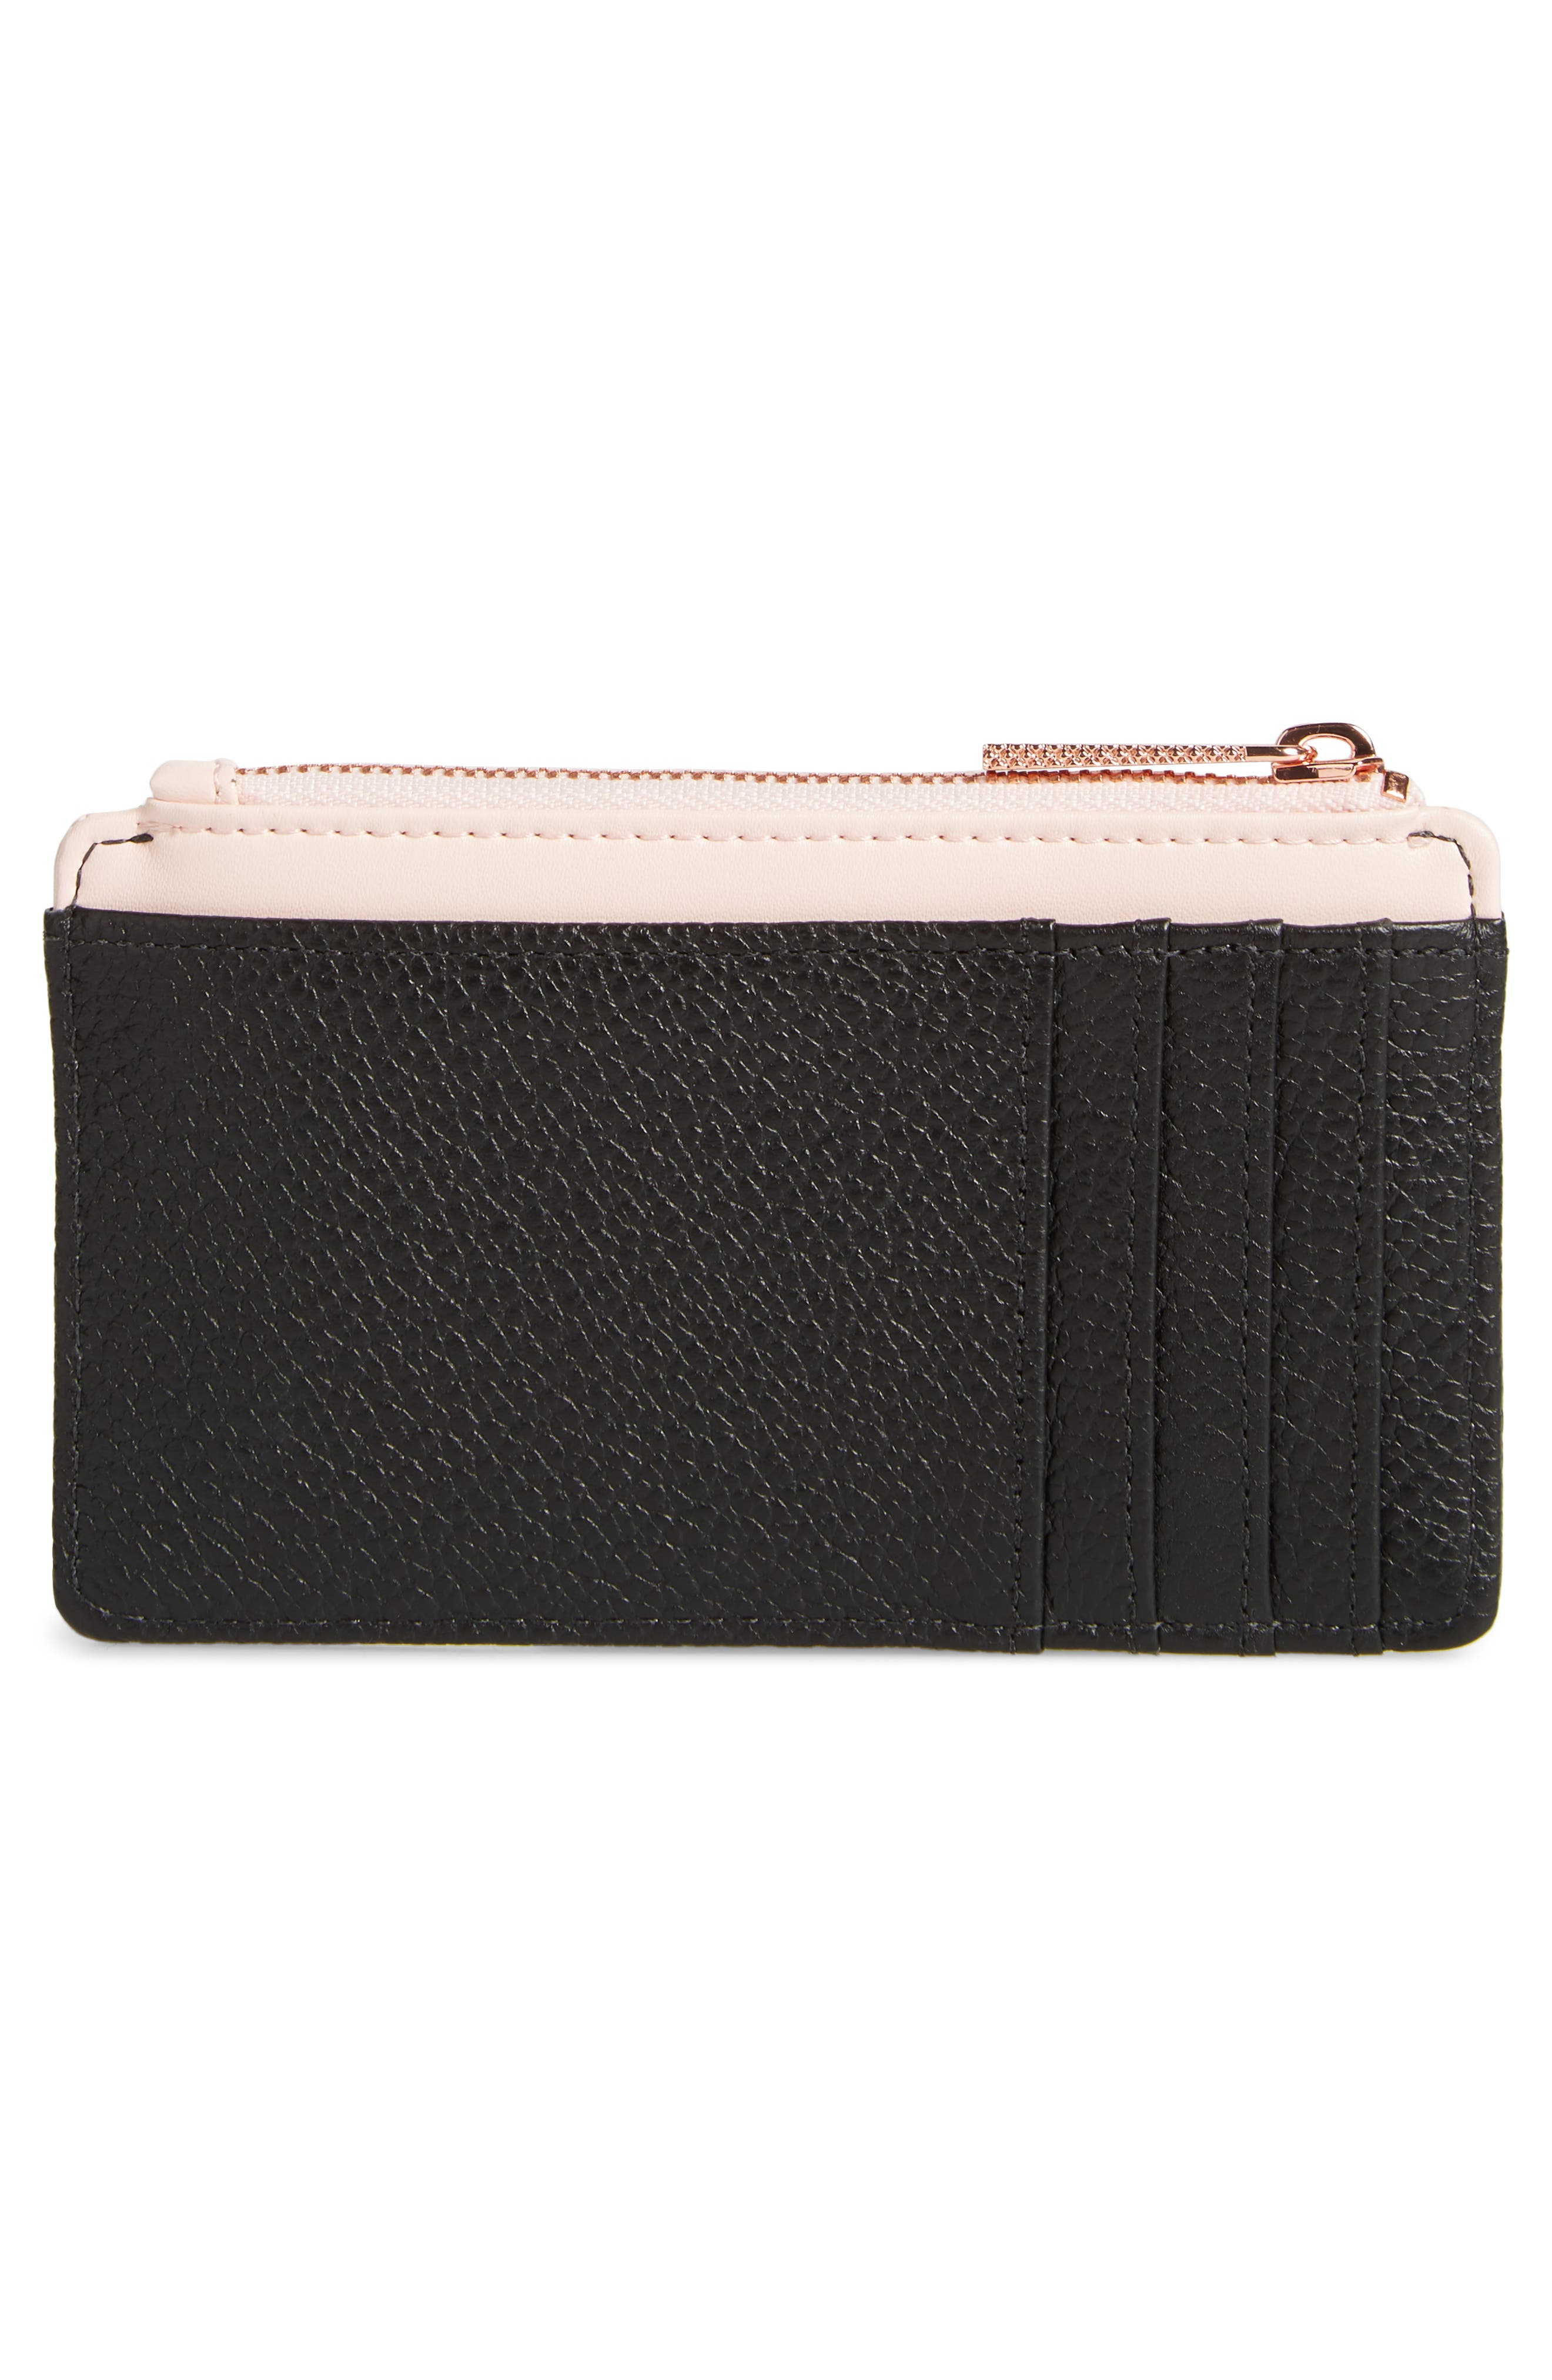 Alica Top Zip Leather Card Case,                             Alternate thumbnail 4, color,                             001